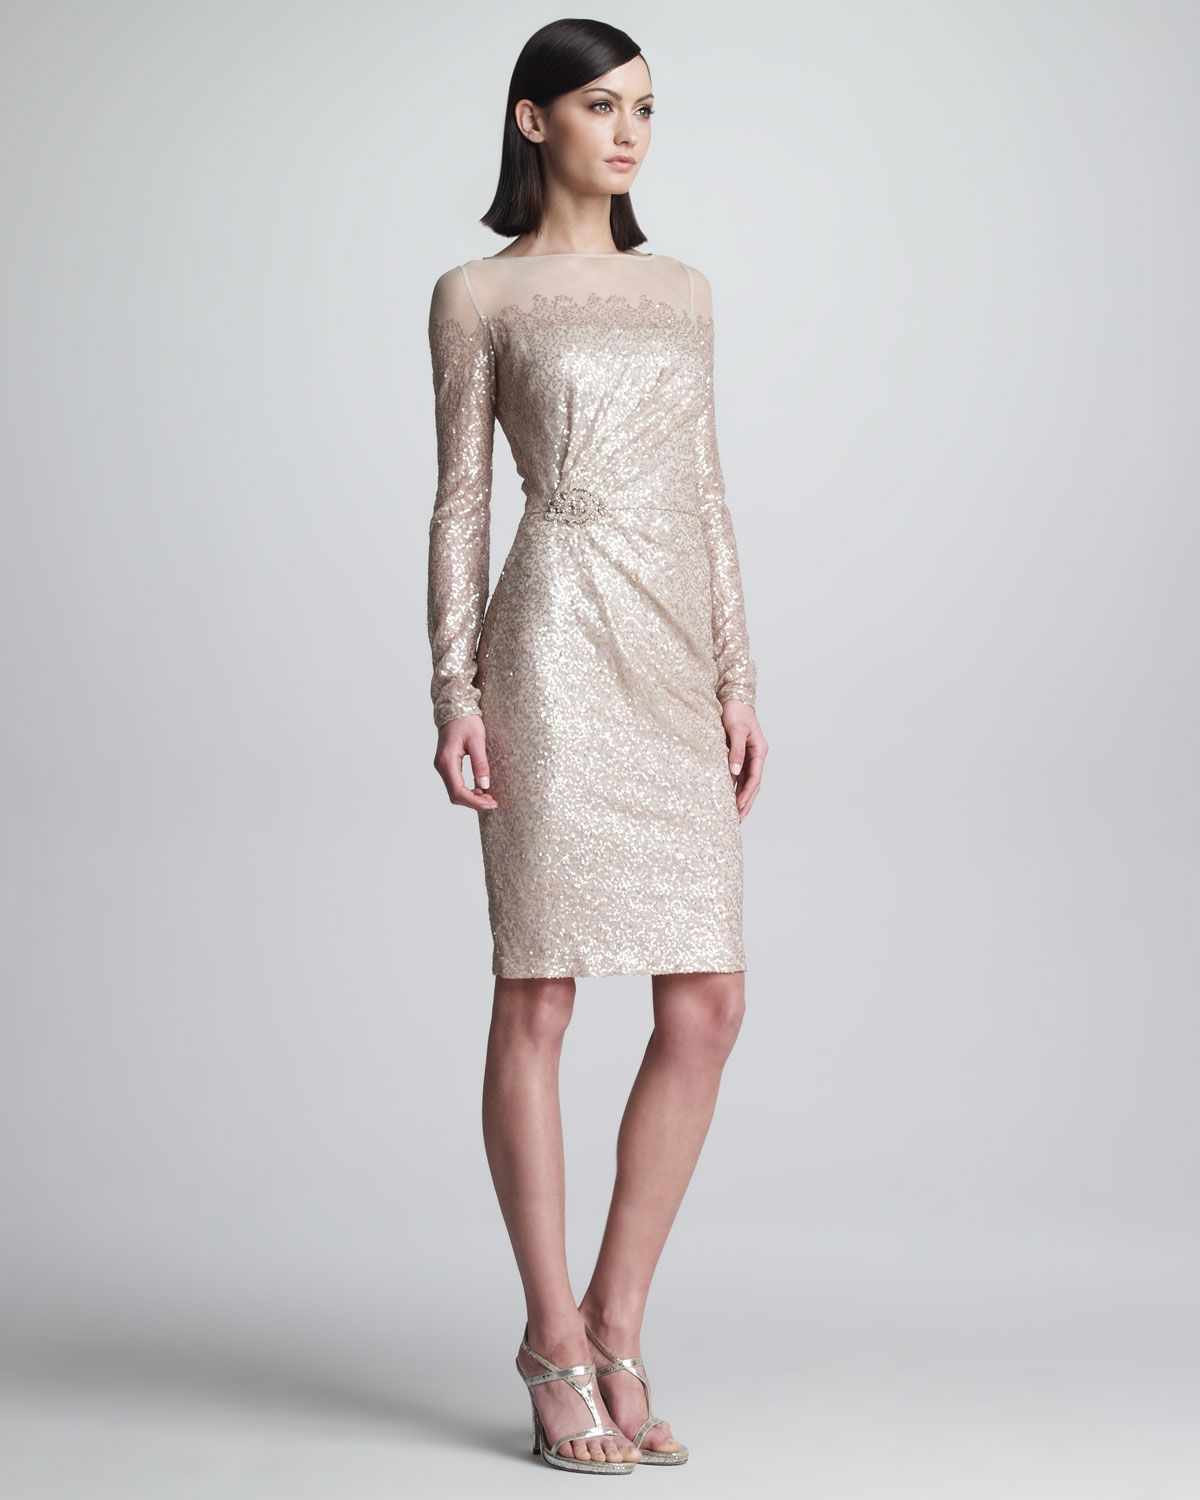 Exclusive-Long-Sleeve-Cocktail-Dresses-1-1 | Cocktail Dresses With ...